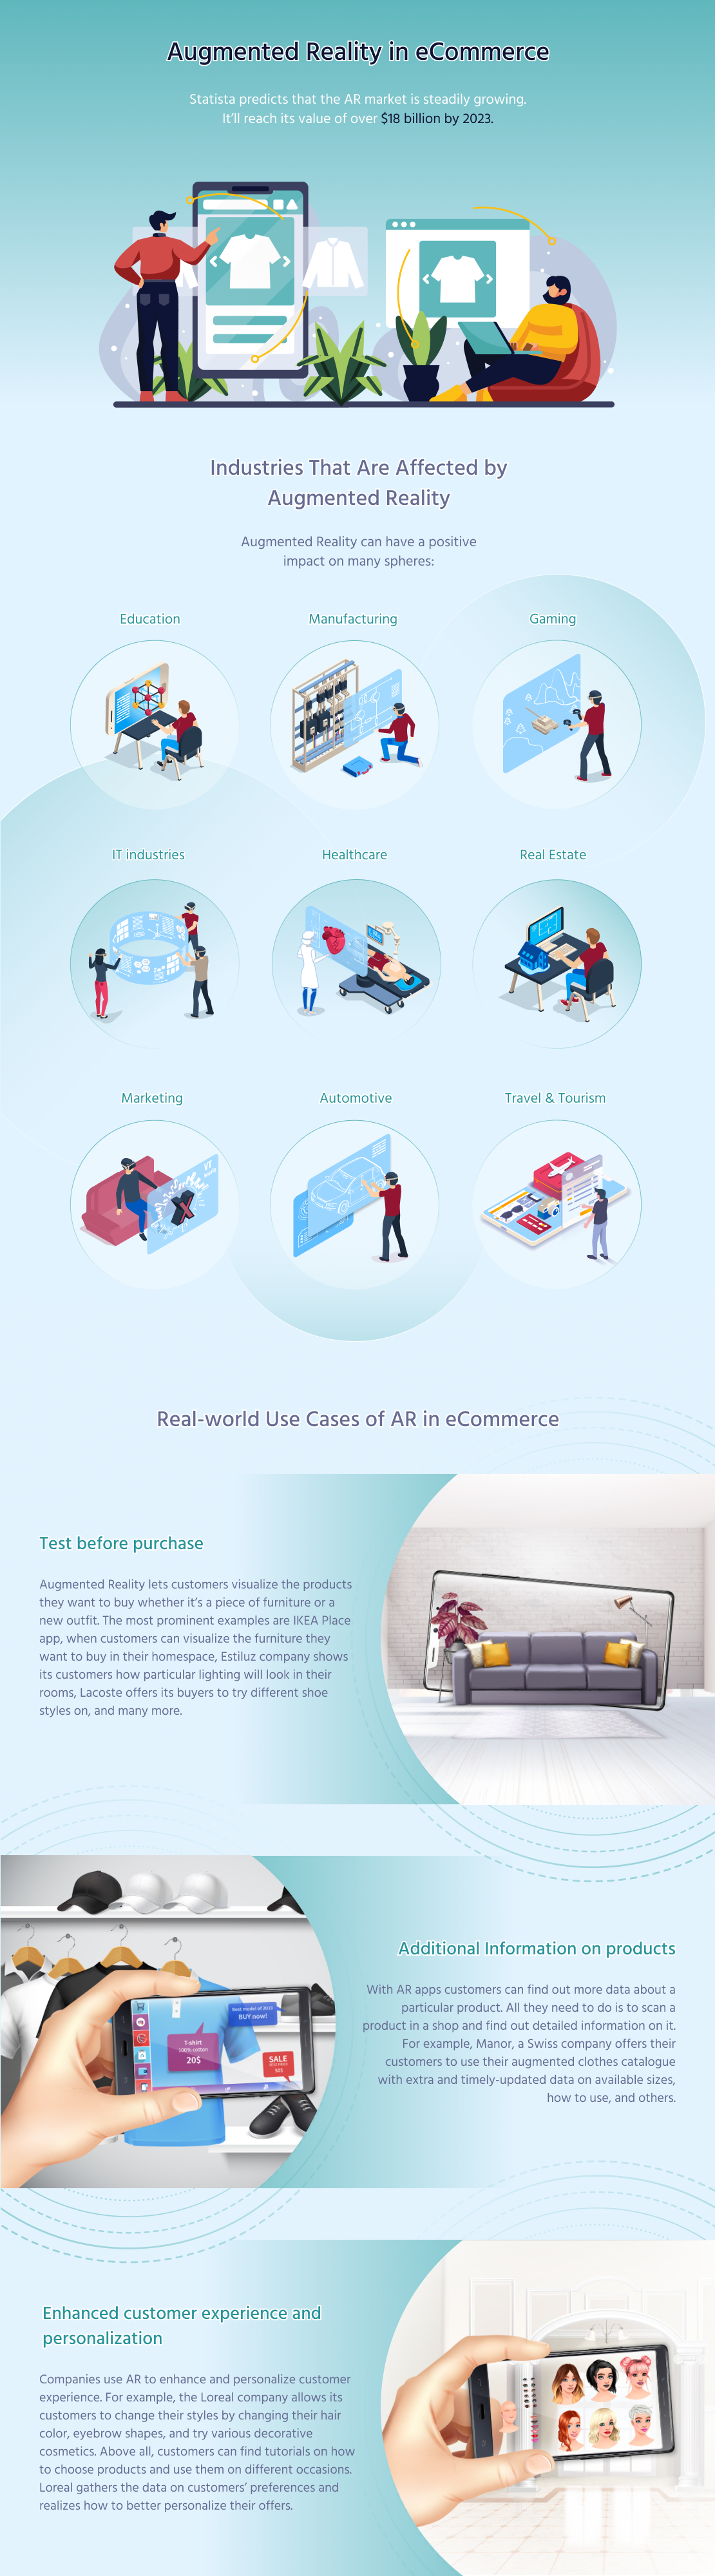 benefits of augmented reality in ecommerce